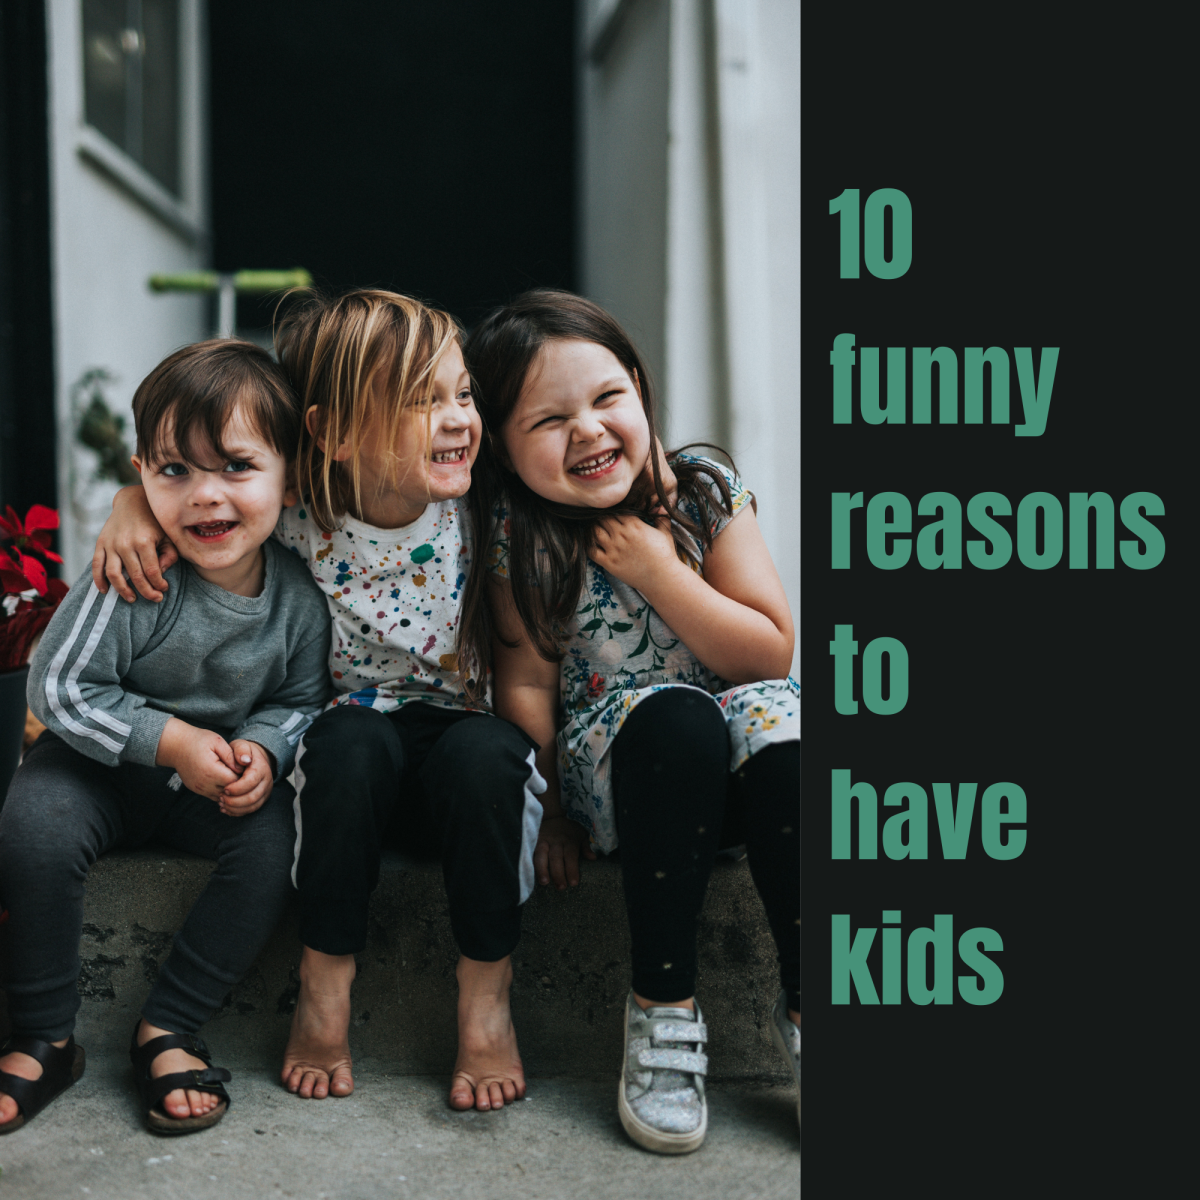 10 funny reasons to have kids.